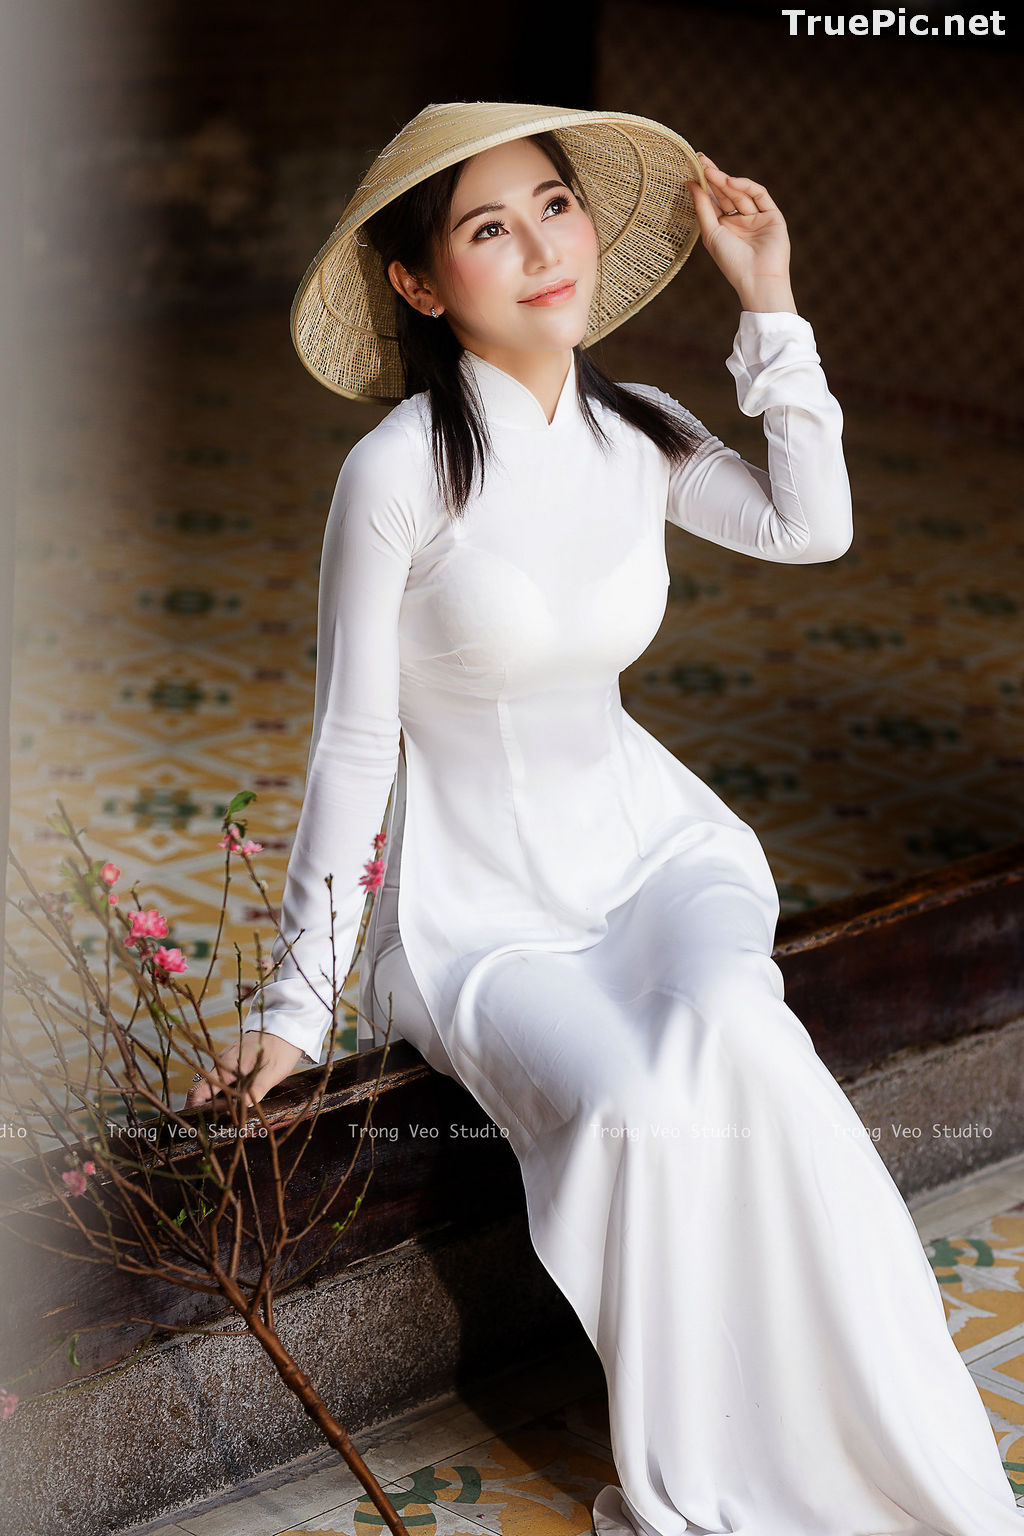 Image The Beauty of Vietnamese Girls with Traditional Dress (Ao Dai) #4 - TruePic.net - Picture-2